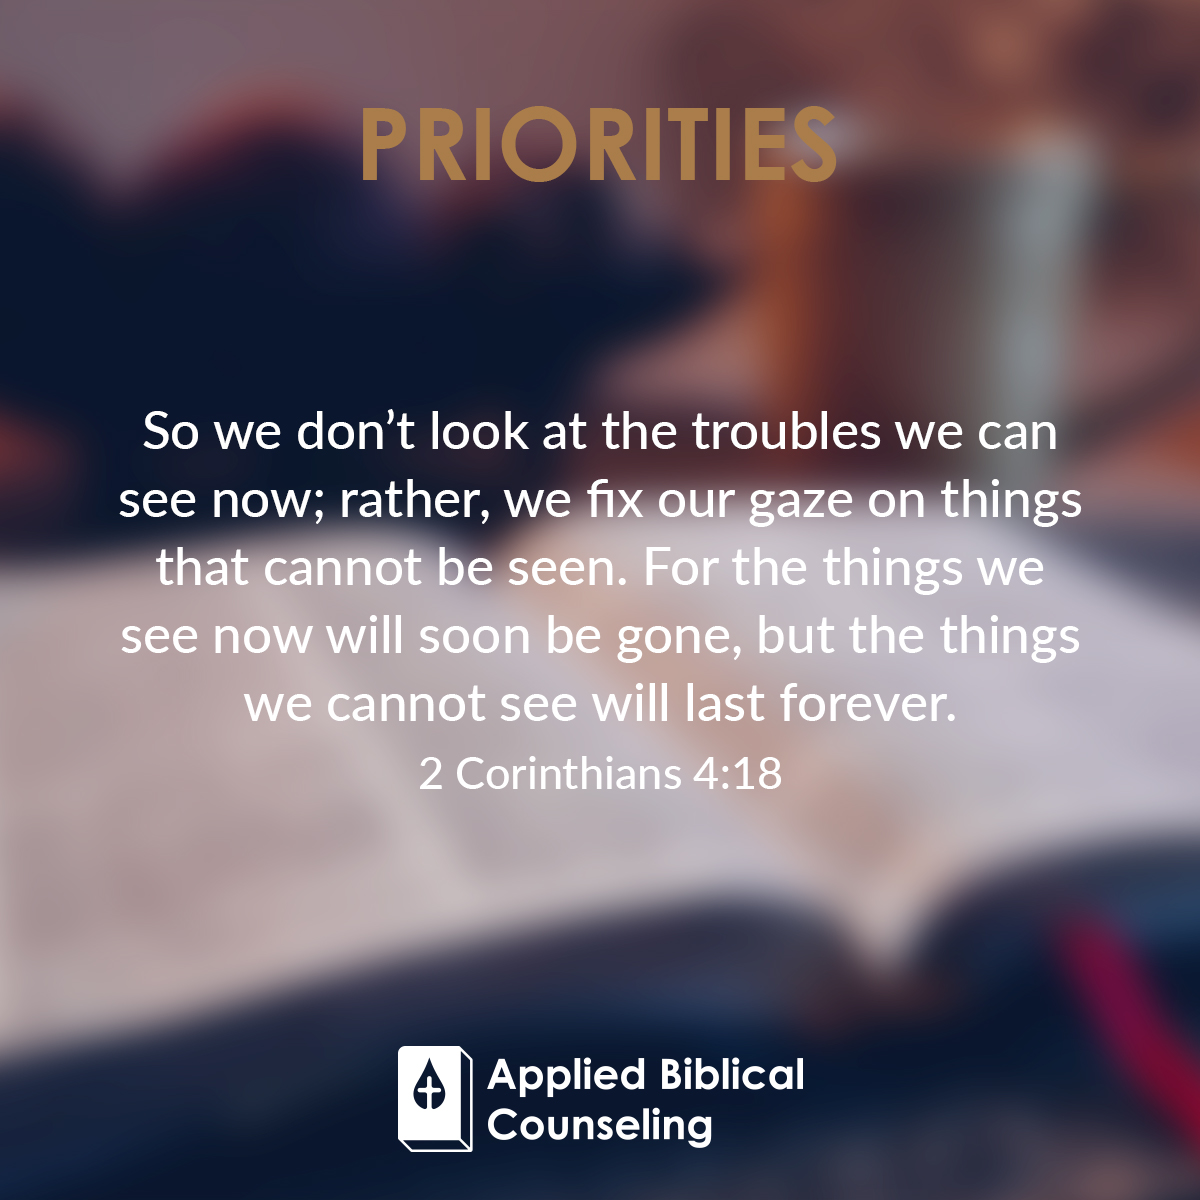 Applied Biblical Counseling Facebook w21 Priorities 3